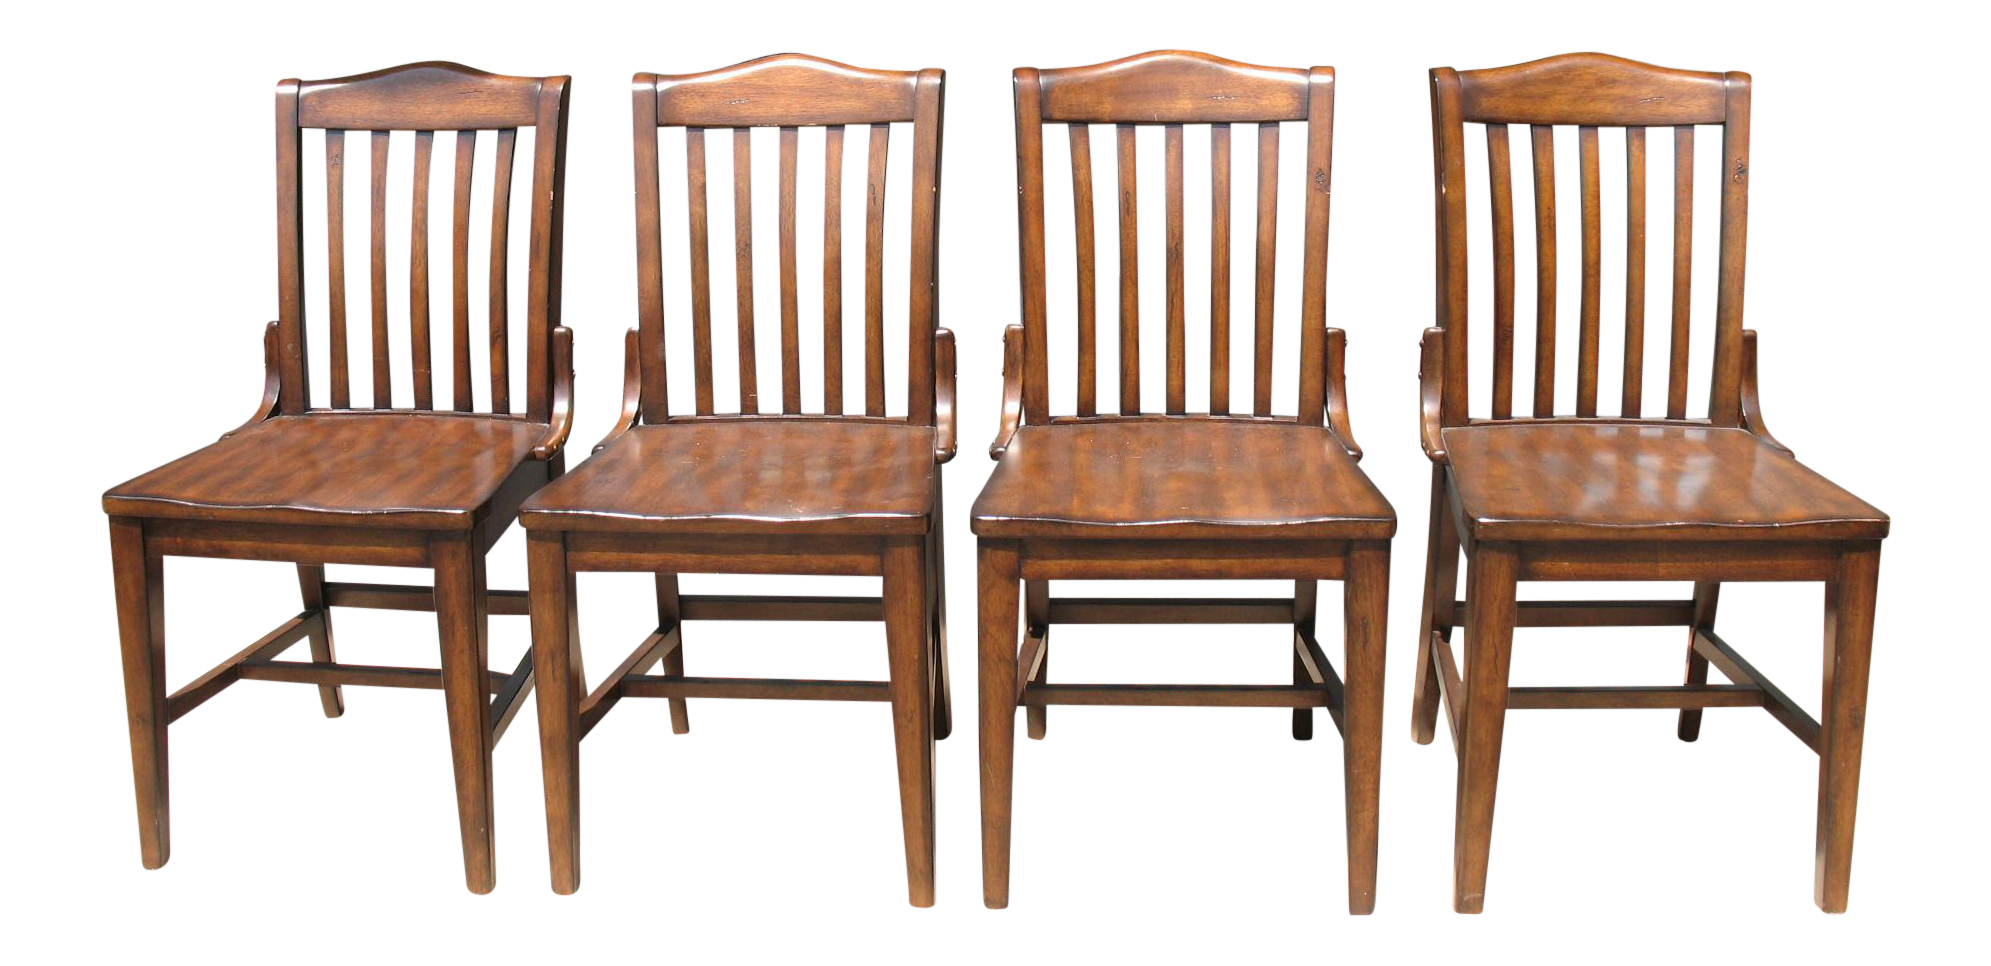 Pottery Barn Dining Chairs Set of 4 Chairish : pottery barn dining chairs set of 4 7079 from www.chairish.com size 1991 x 966 png 2053kB